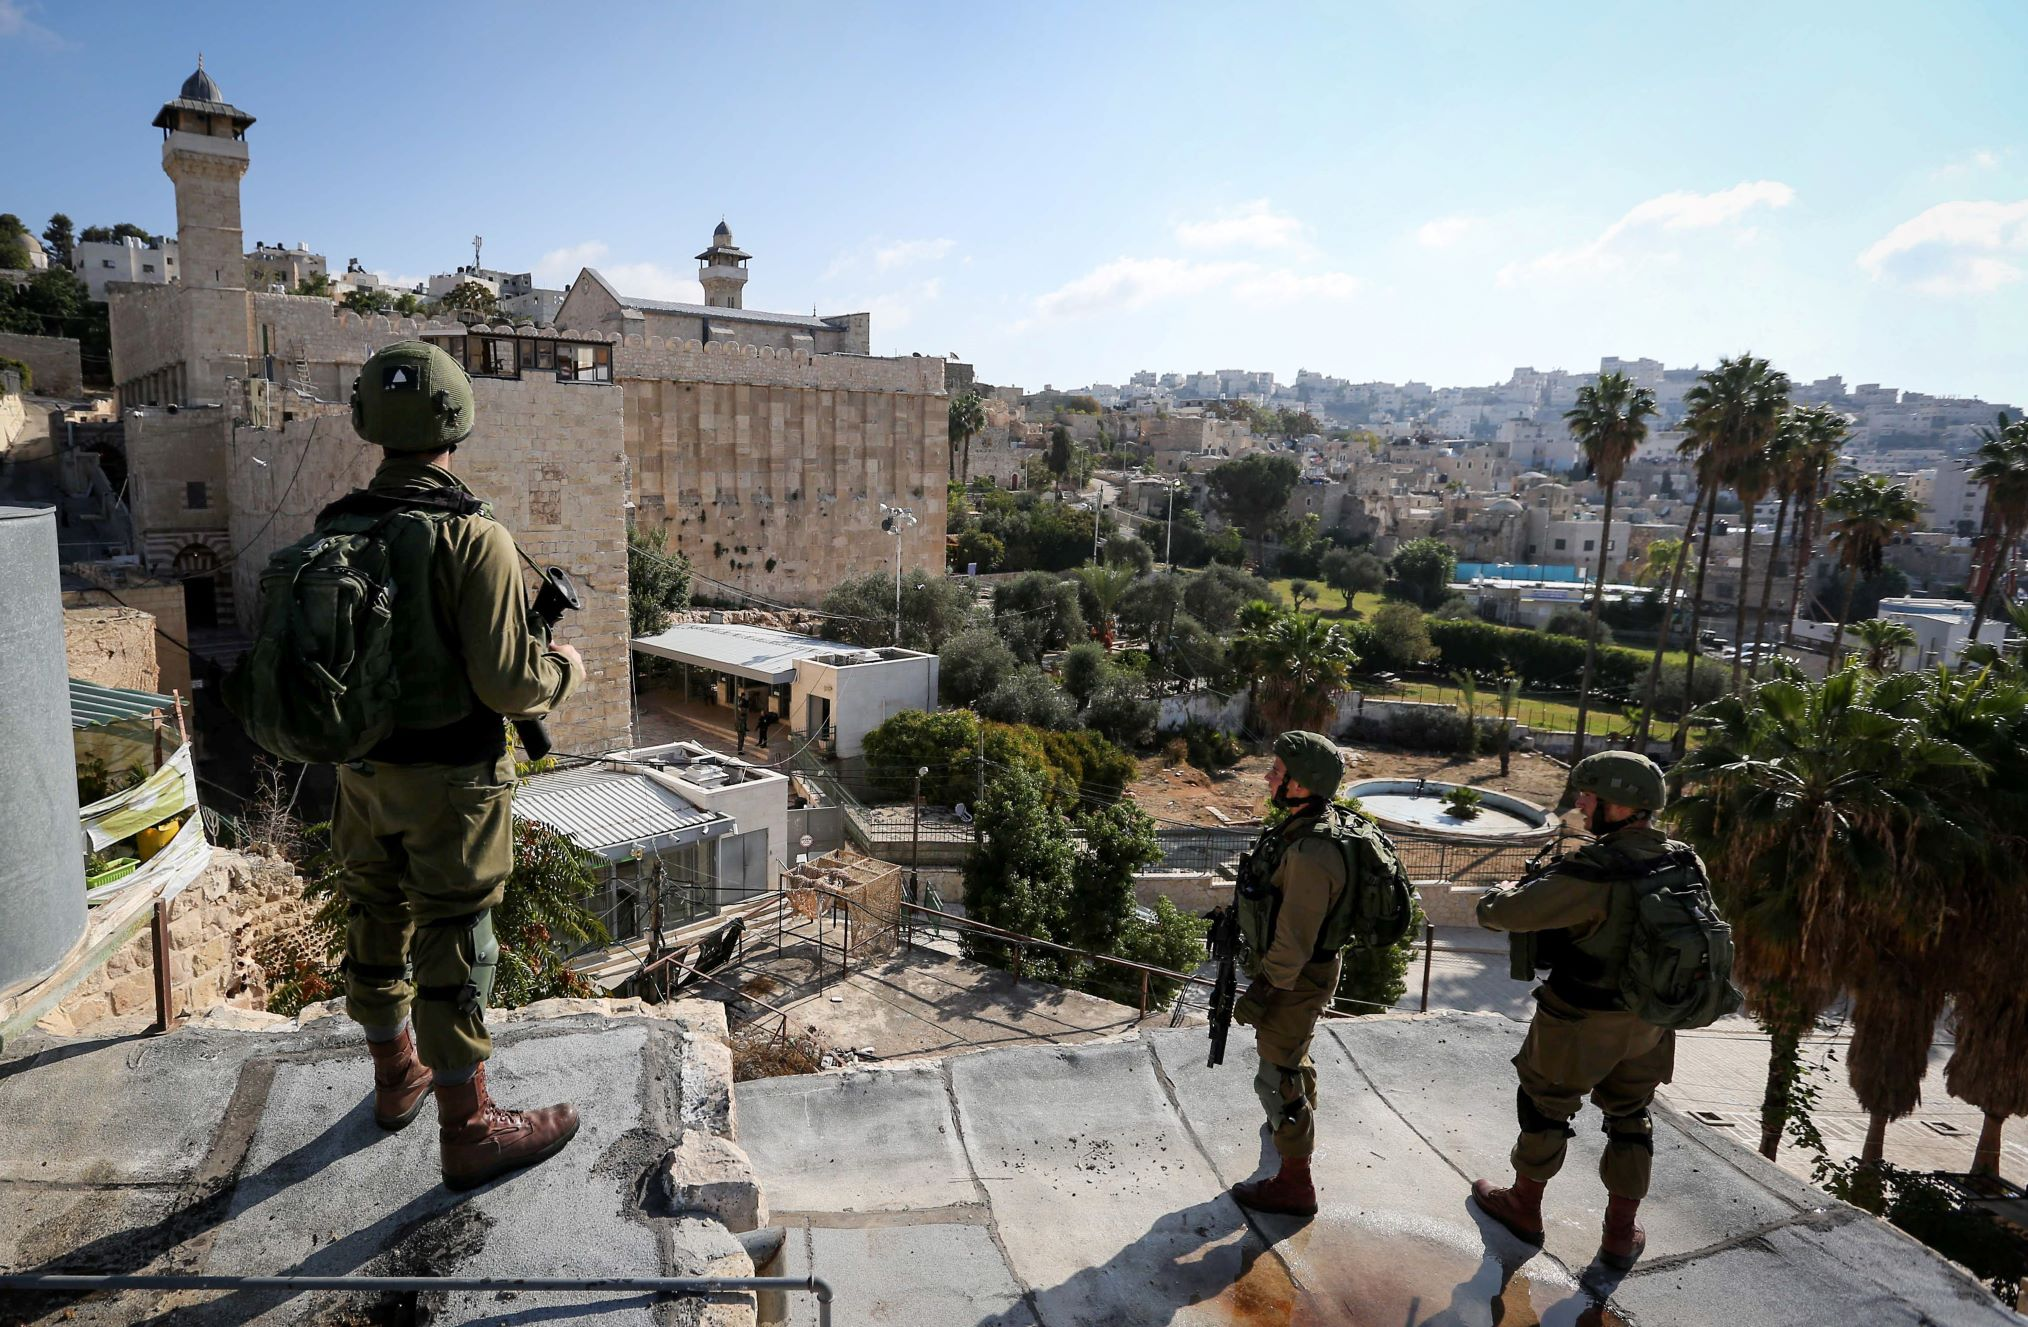 Israeli troops take position around the Cave of the Patriarchs, also known as the Ibrahimi mosque, in the old city of Hebron in the West Bank, October 30, 2019. (Wisam Hashlamoun/Flash90)